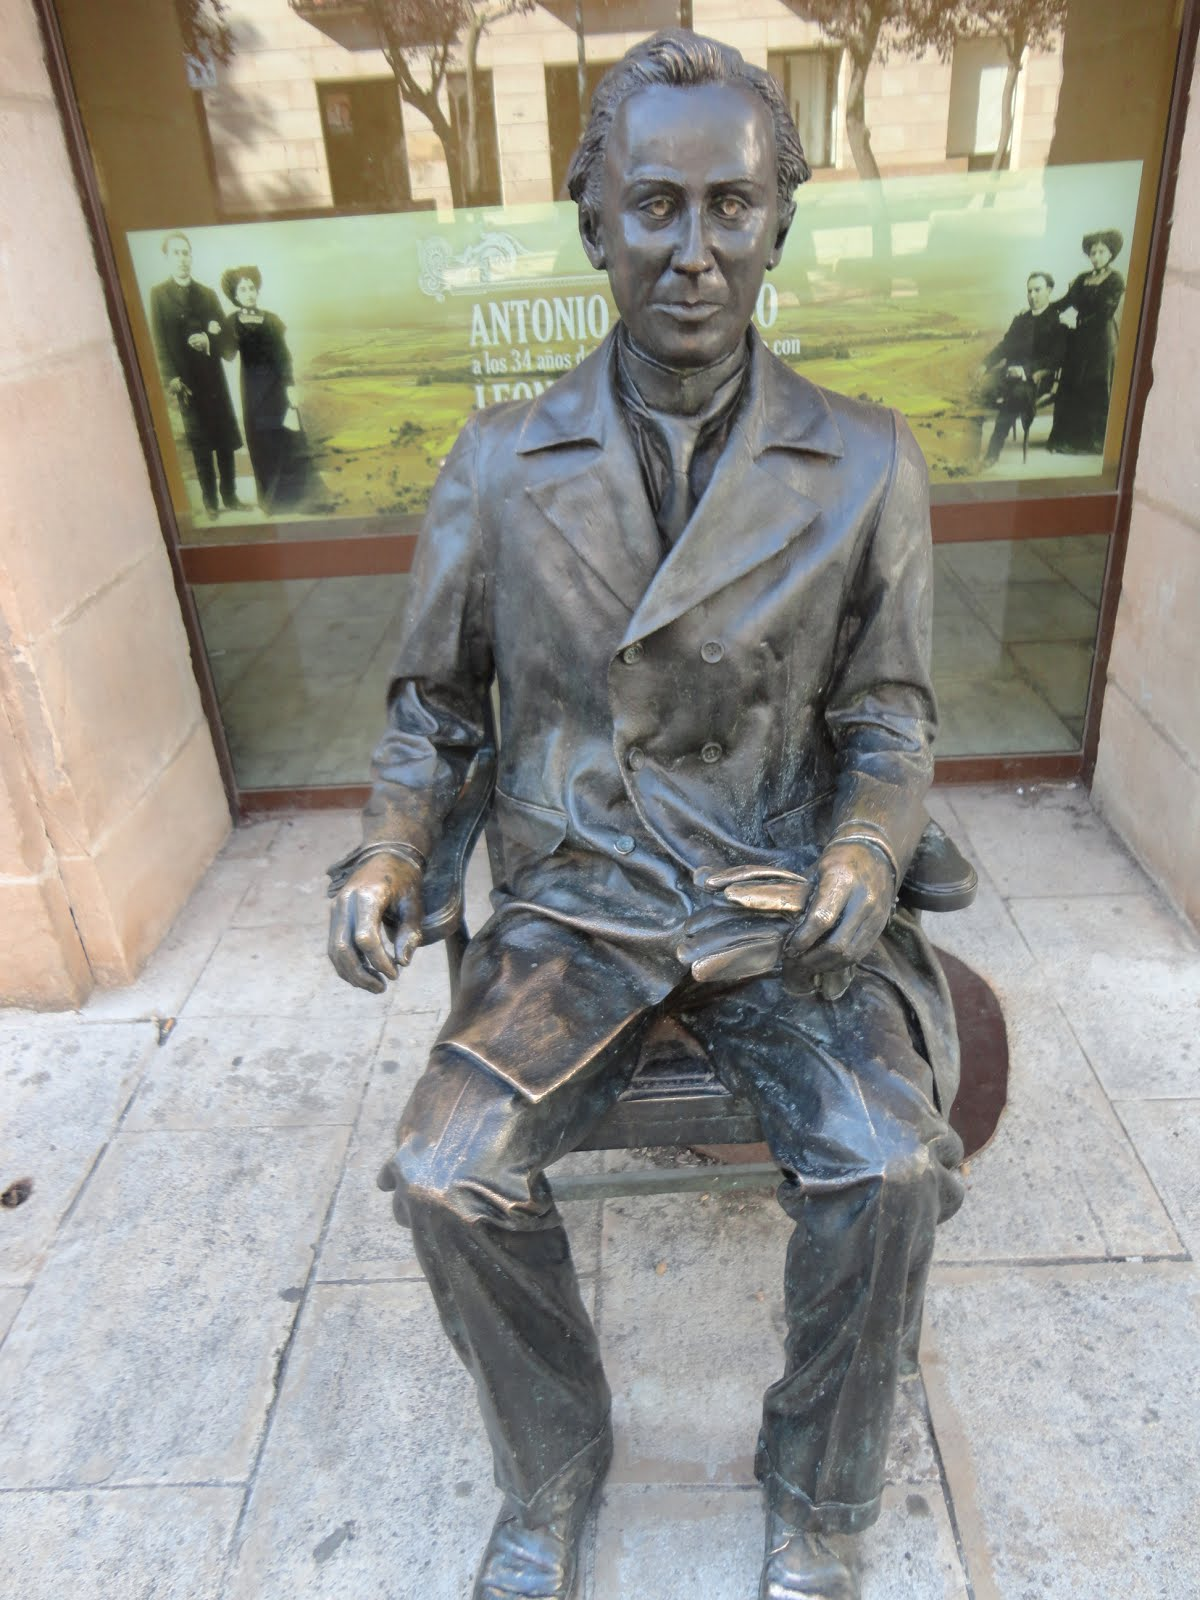 ANTONIO MACHADO EN EL INSTITUTO DE SORIA